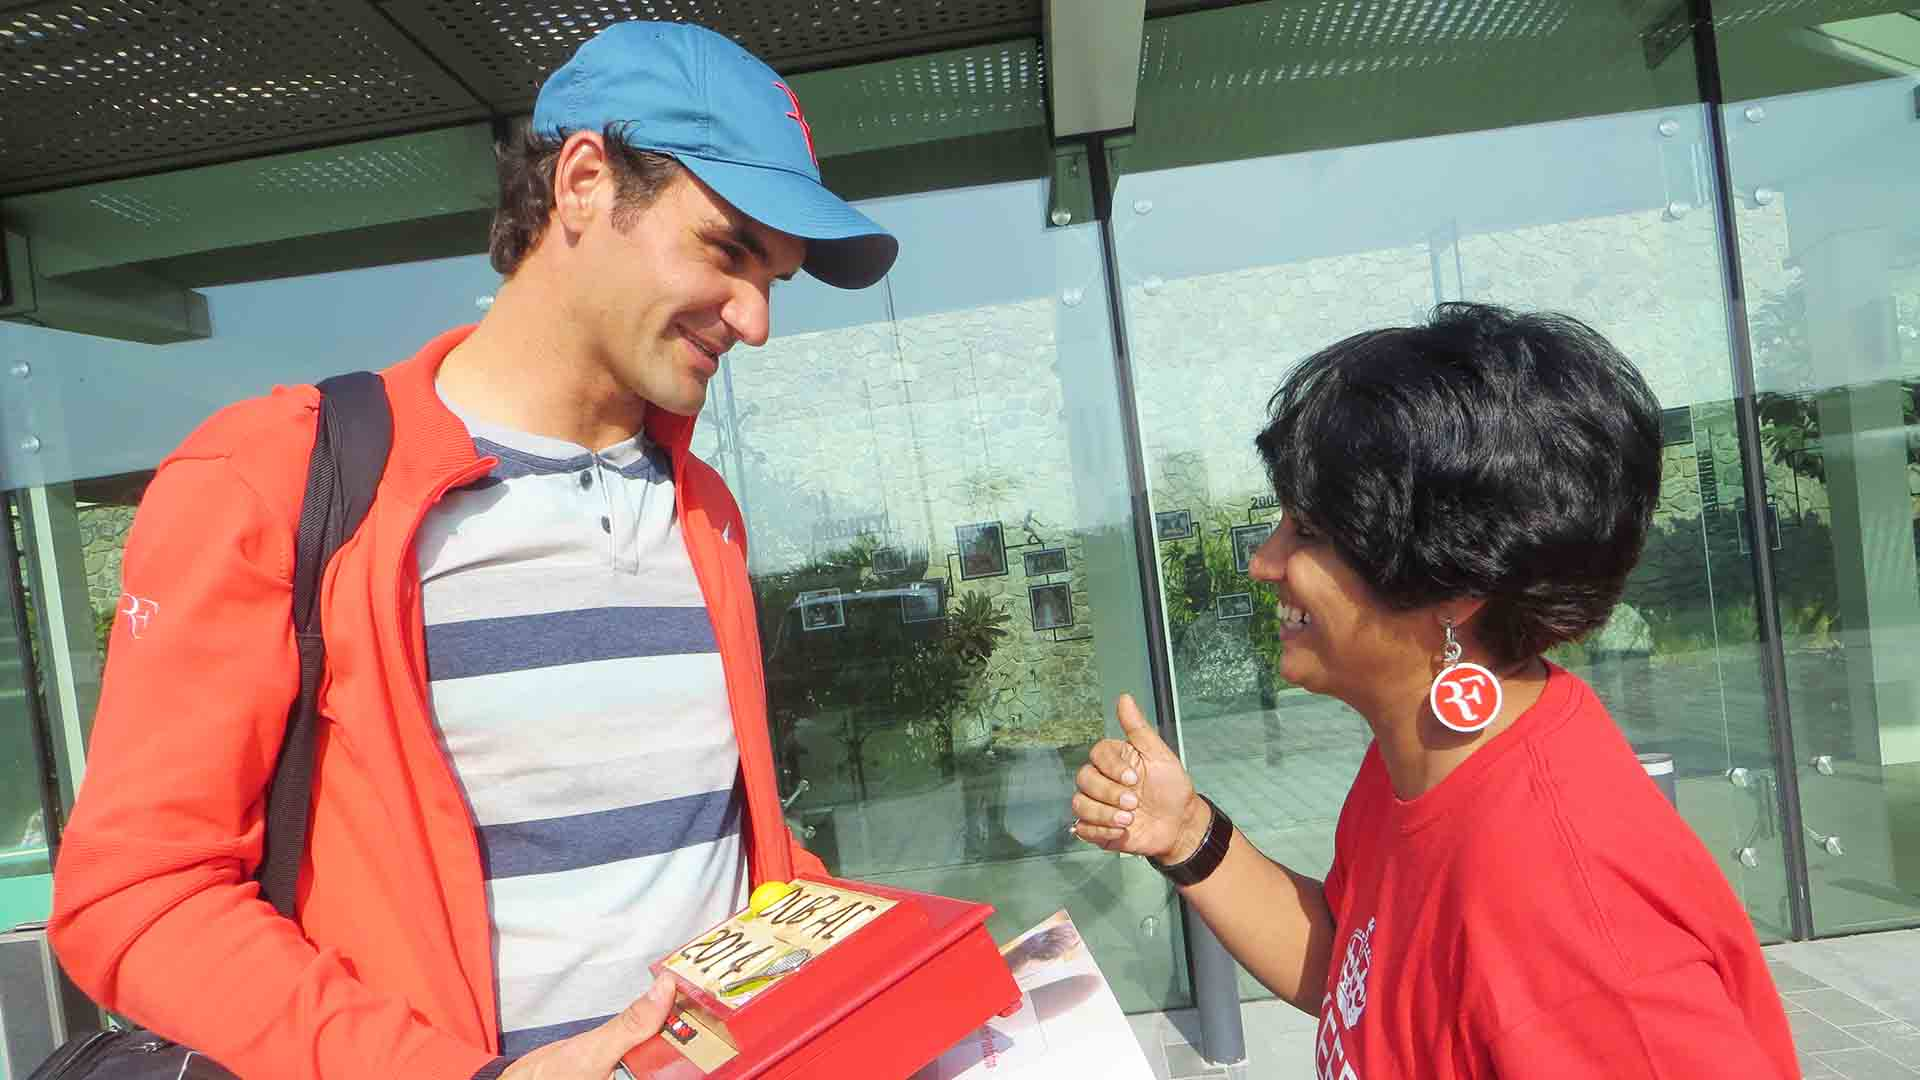 Sunita Sugita has attended more than 100 Roger Federer matches around the world.